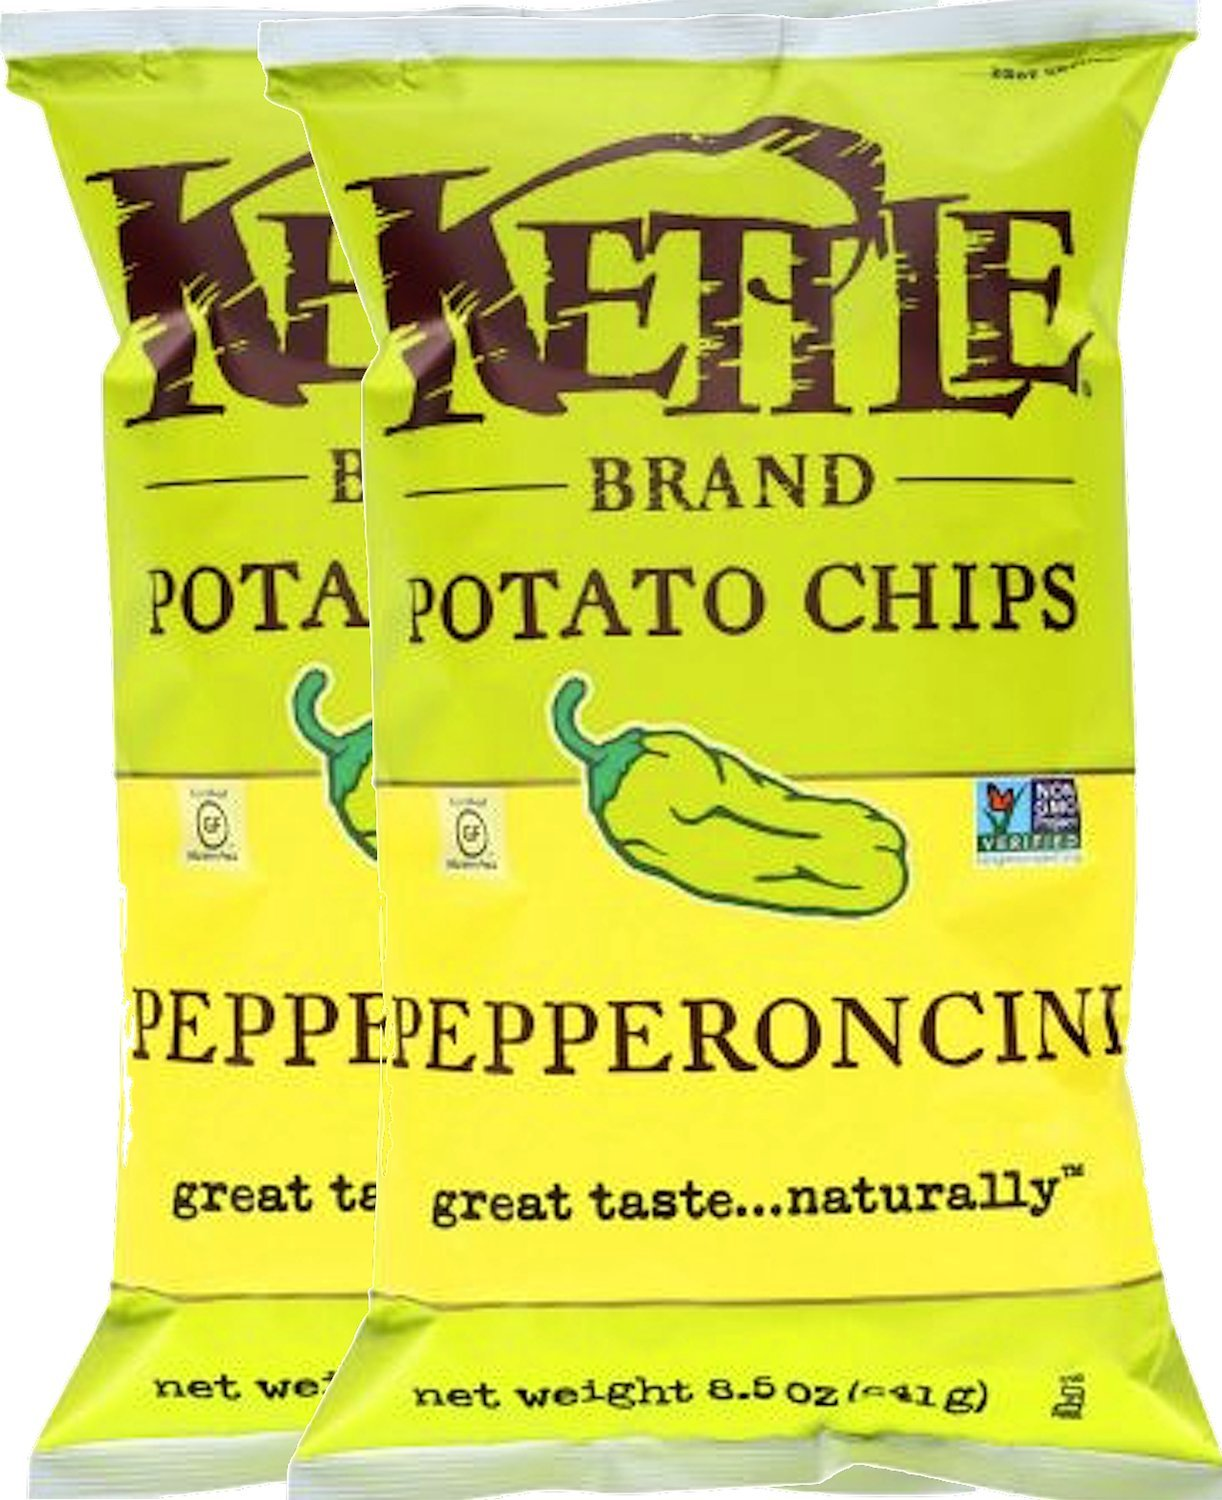 Kettle Brand Kettle Gluten Free Chips Pepperoncini 8.5oz Snack Care Package for College, Military, Sports (2) by Kettle Brand